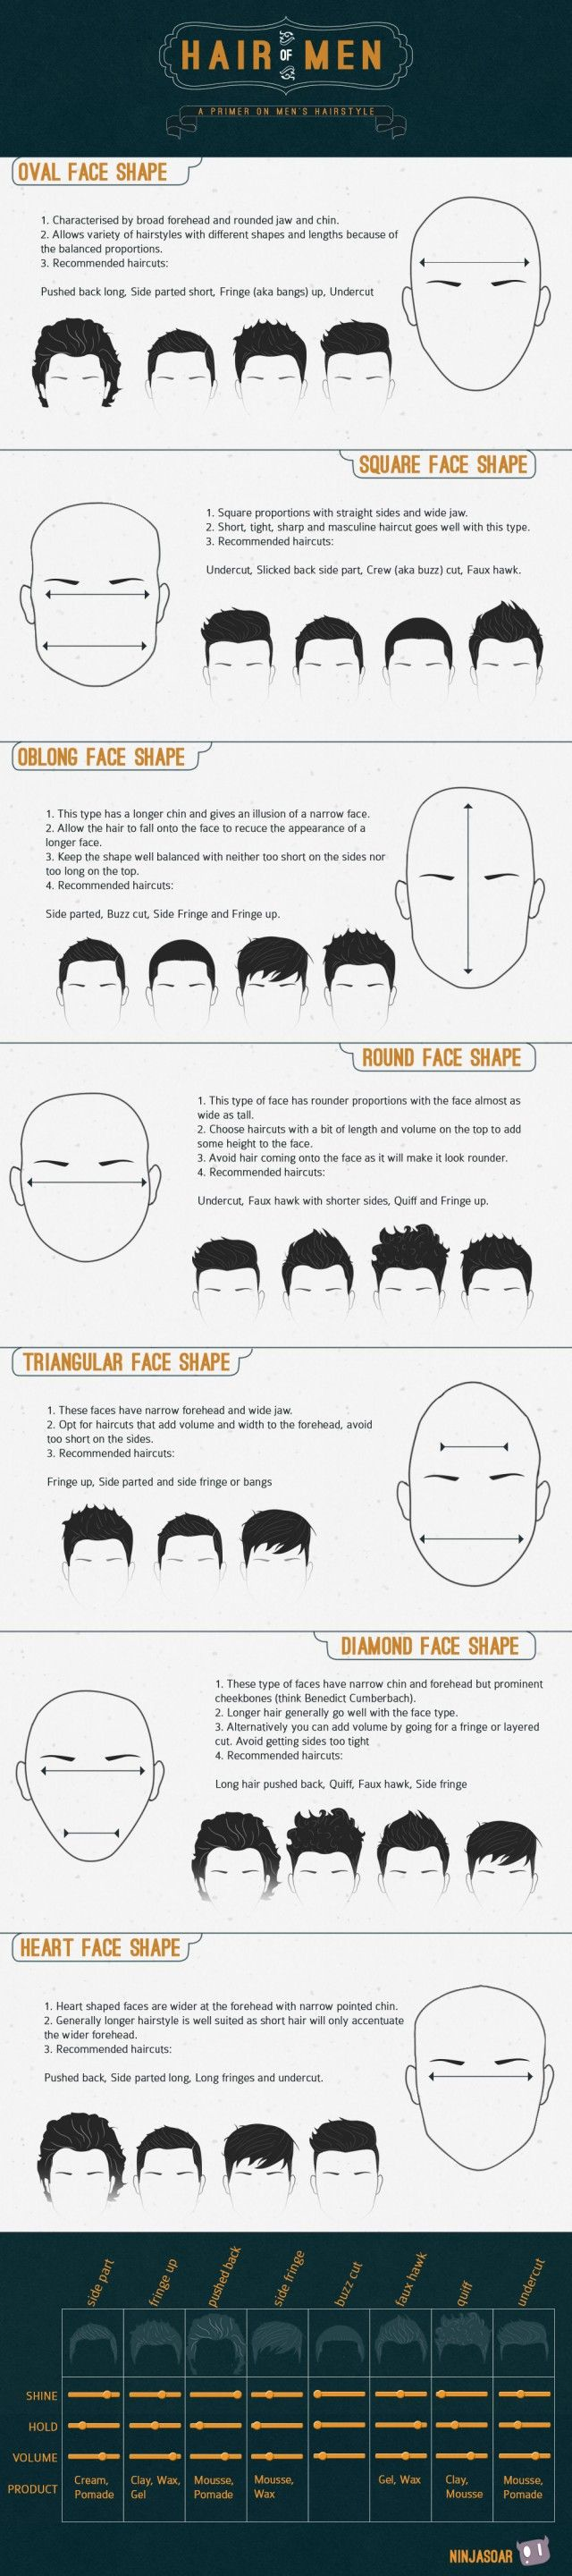 The #Hair of #Men: What #Hairstyle is Best for You -  Do you fancy an infographic? There are a lot of them online, but if you want your own please visit http://www.linfografico.com/prezzi/ Online girano molte infografiche, se ne vuoi realizzare una tutta tua visita http://www.linfografico.com/prezzi/